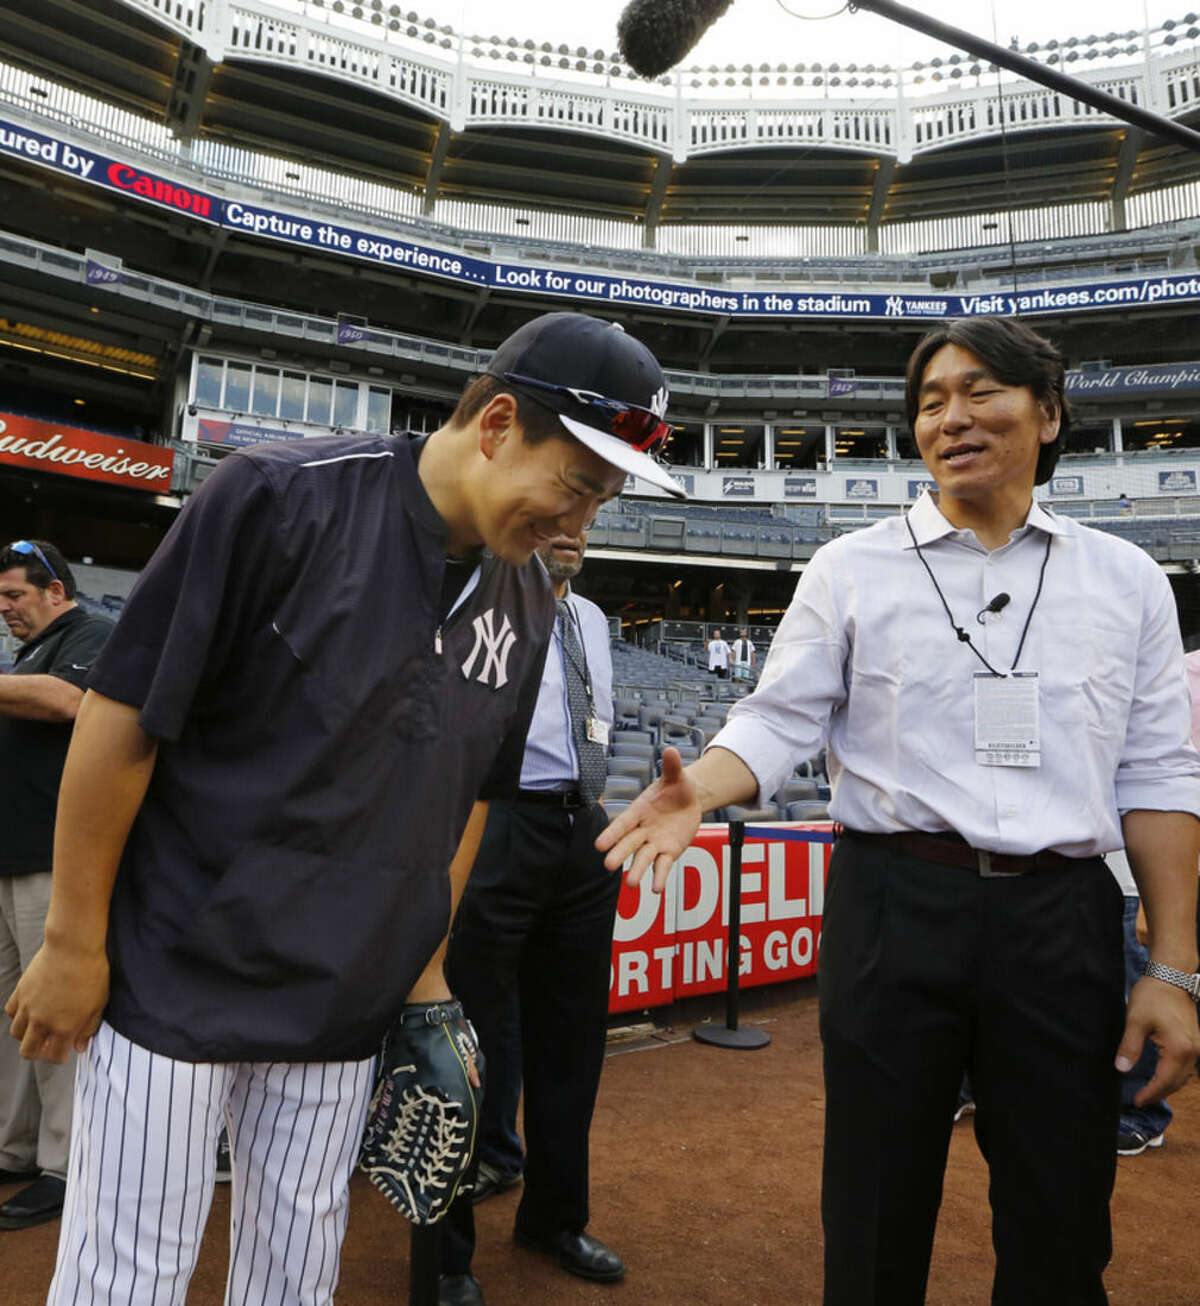 New York Yankees starting pitcher Masahiro Tanaka, left, bows in respect to former Yankee Hideki Matsui before a baseball game between the Boston Red Sox and the Yankees, Wednesday, Aug. 5, 2015, at Yankee Stadium in New York. Matsui was the 2009 World Series Most Valuable Player. (AP Photo/Kathy Willens)